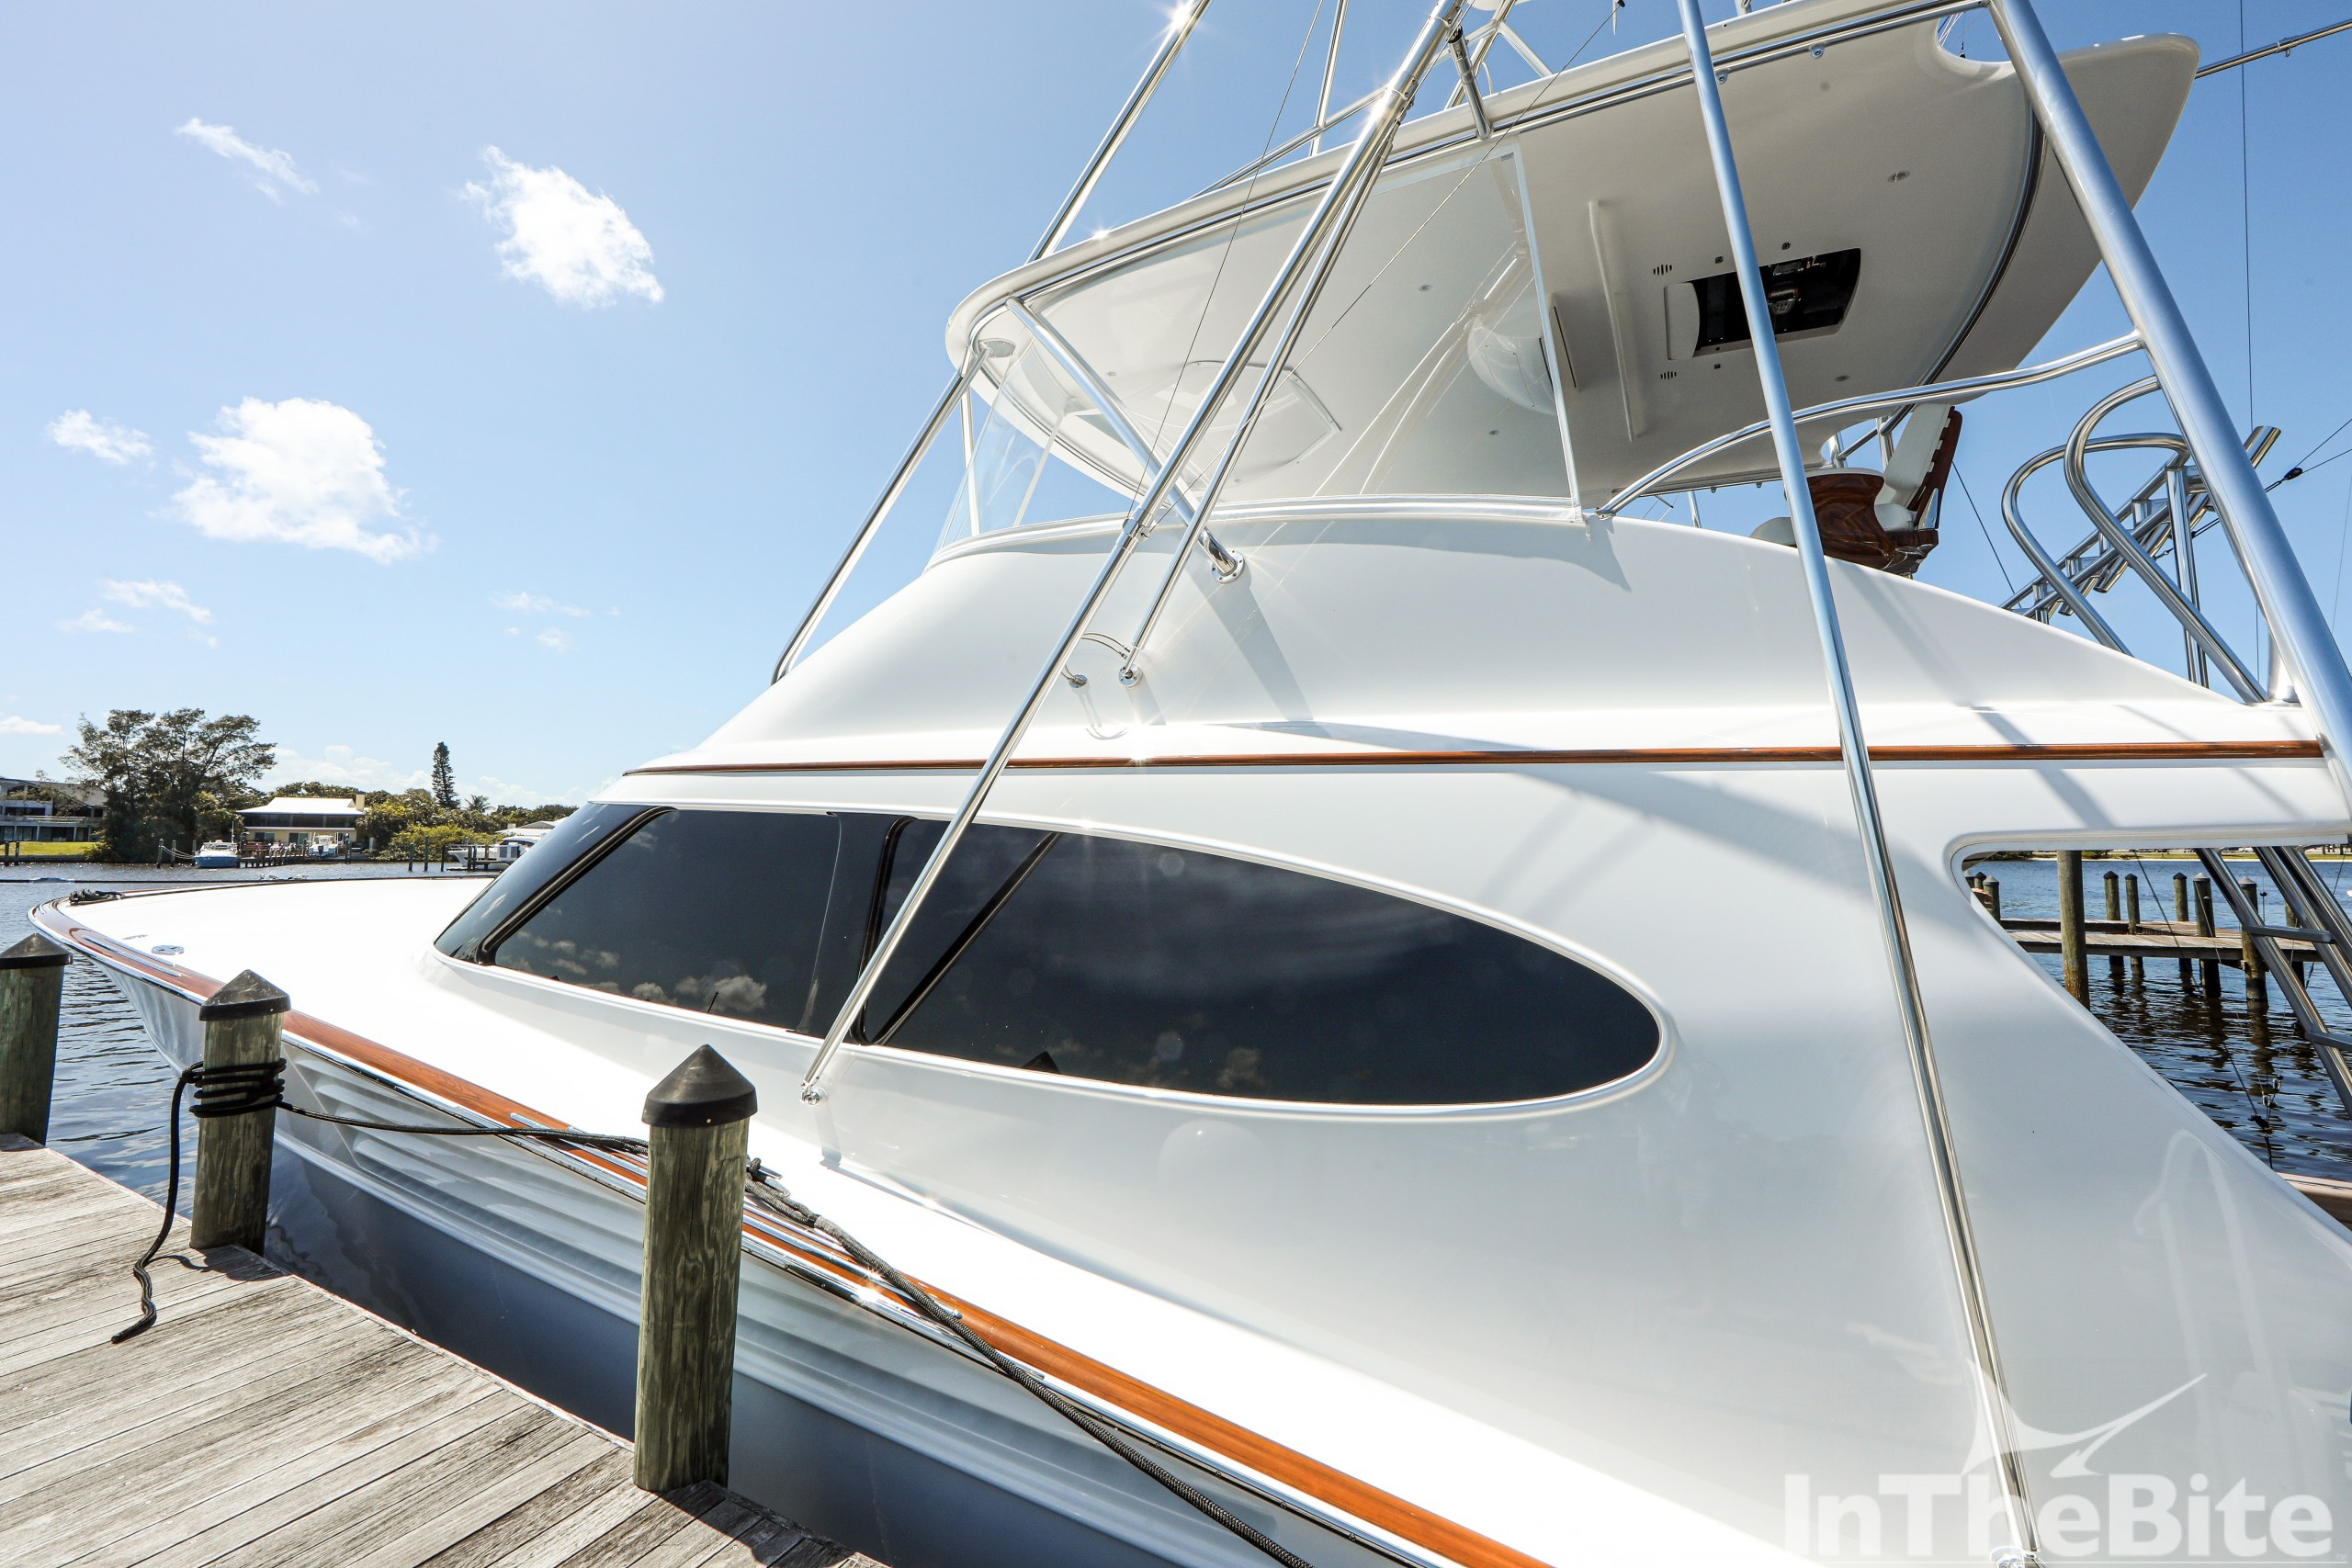 72' Bayliss Old Reliable—Purpose-Built for Chasing Billfish on Fly